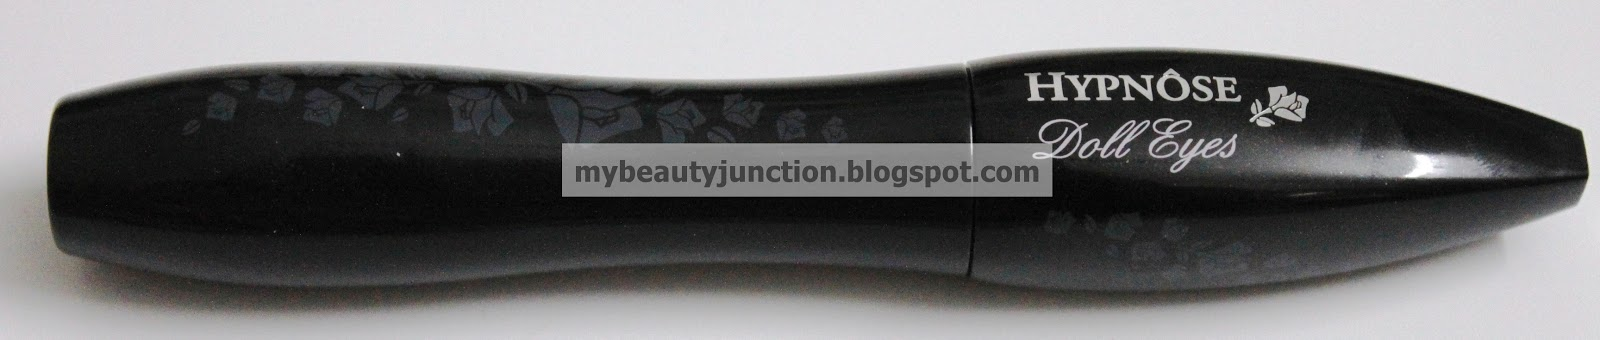 Lancome Hypnose Doll Eyes Mascara review and photos